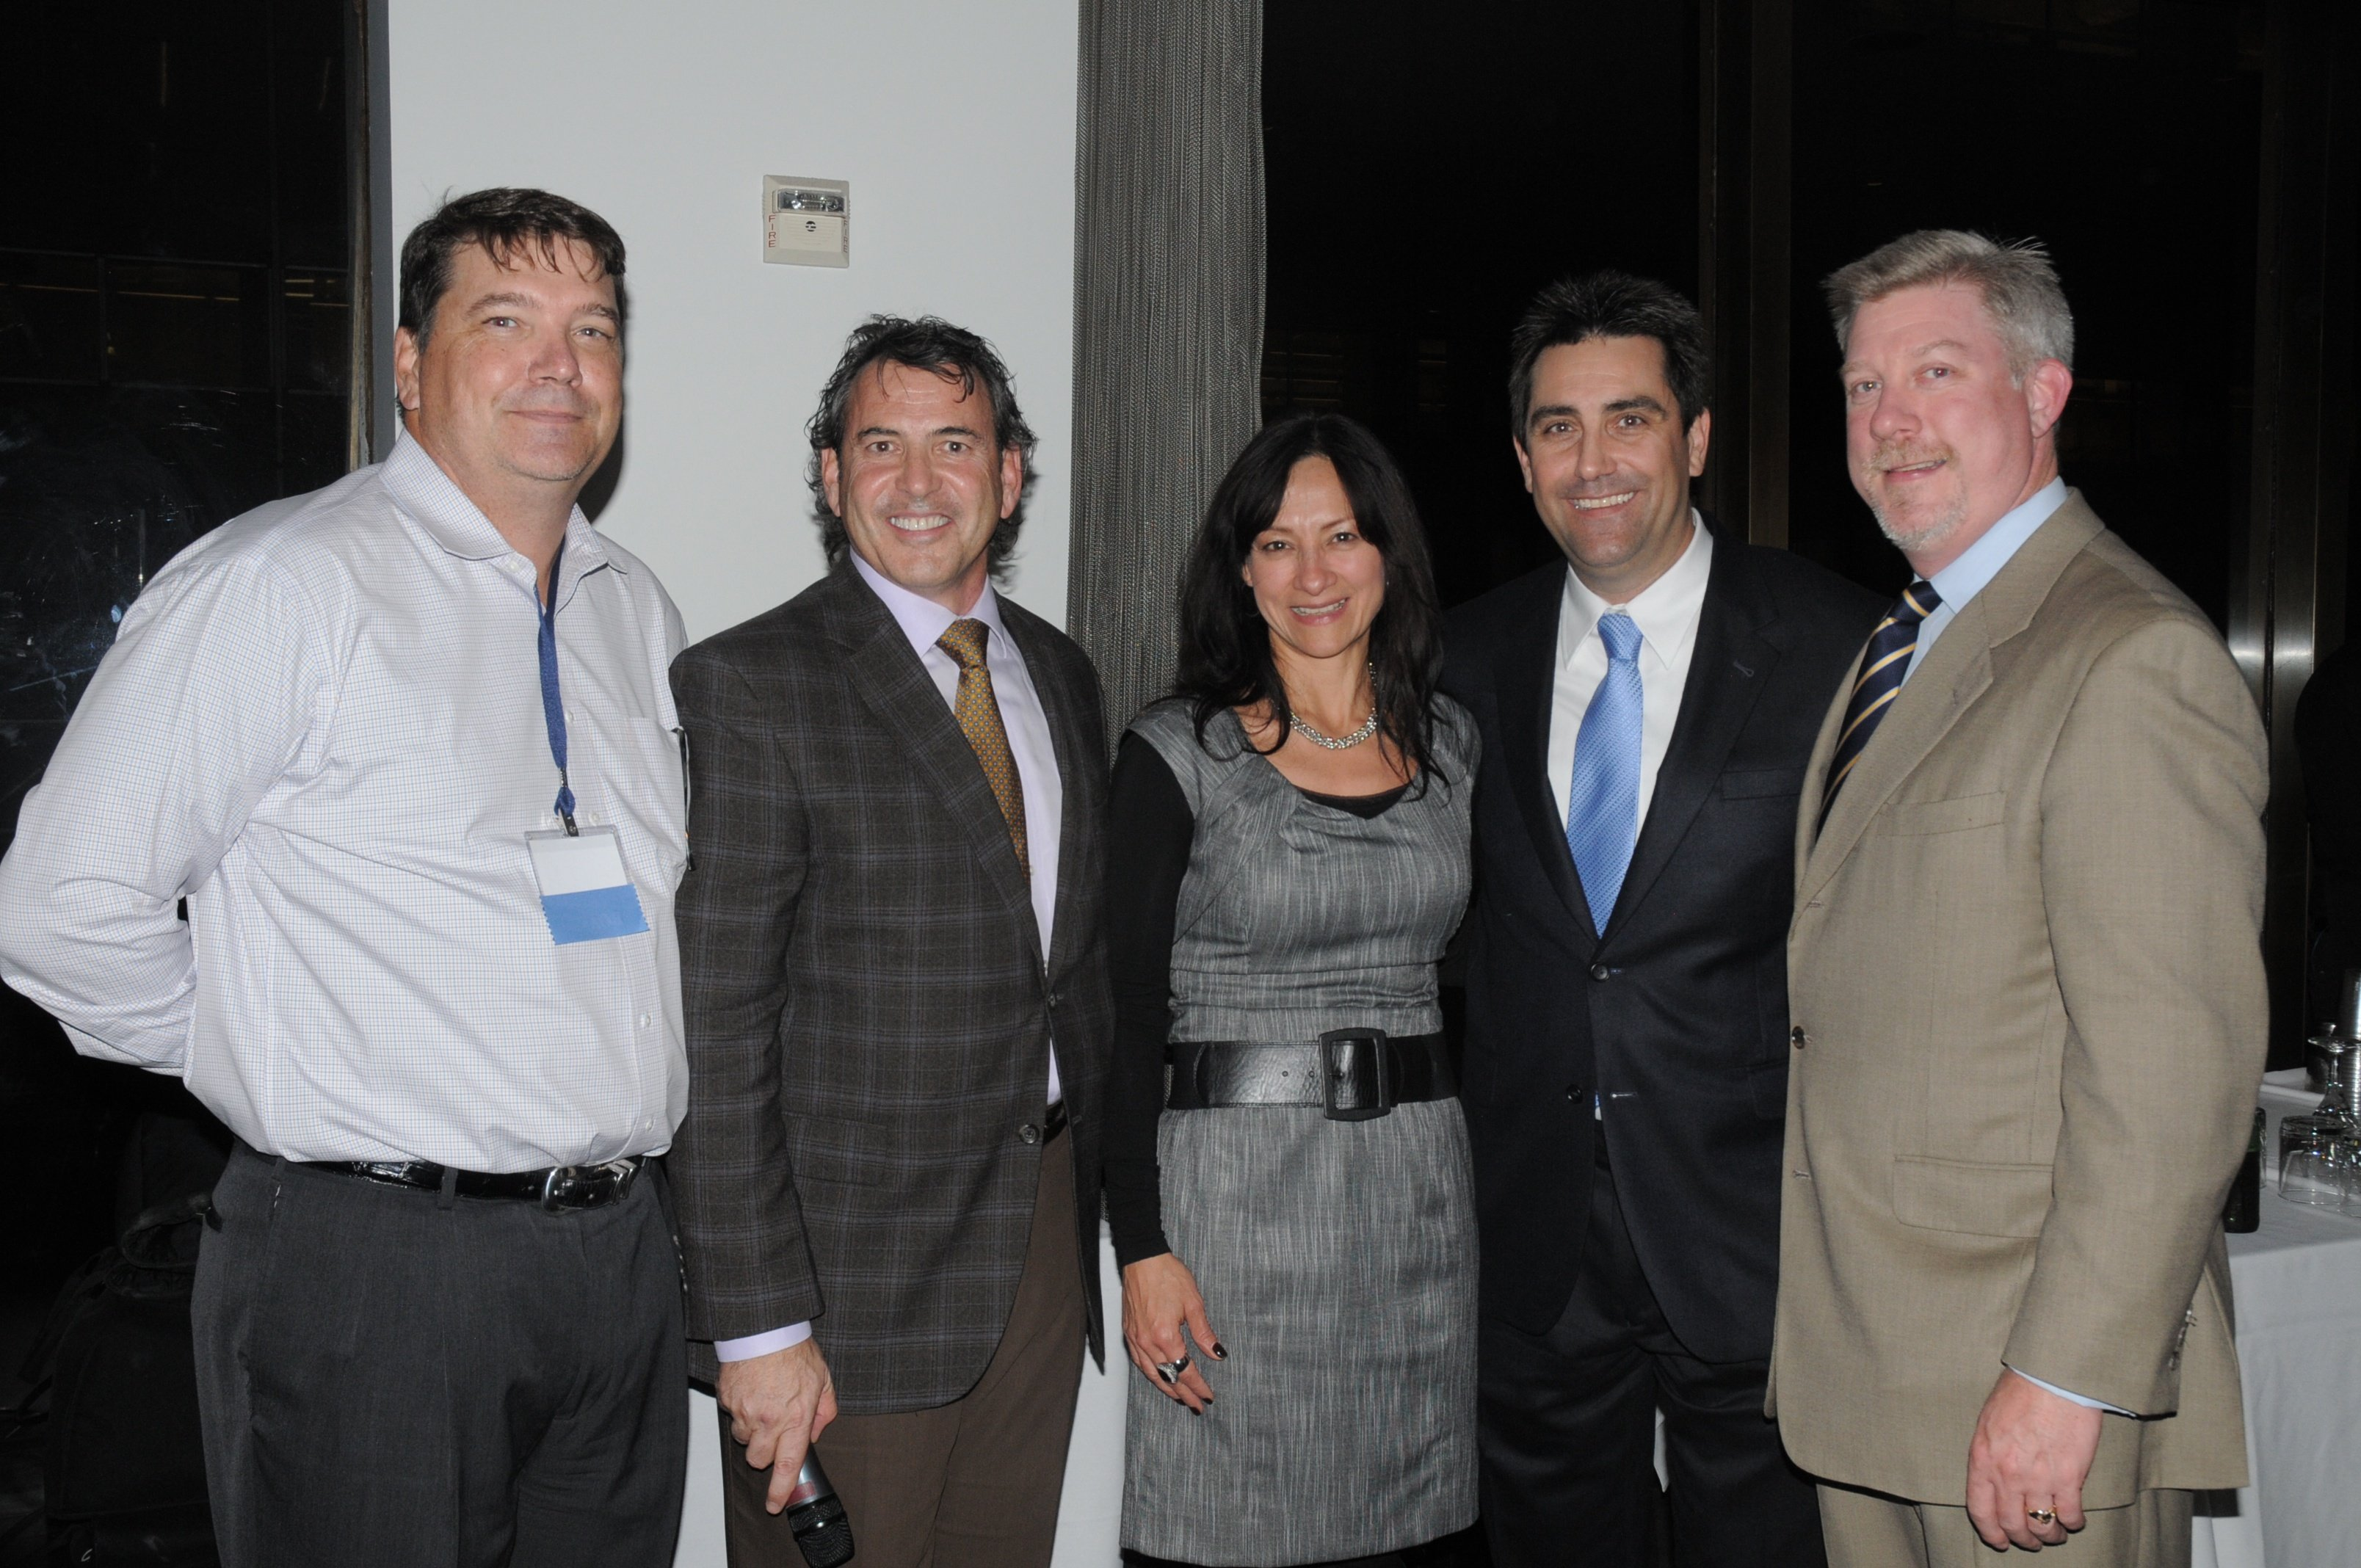 ONUG Board members Keith Shinn and Nick Lippis with the Intel team at the ONUG Dinner reception